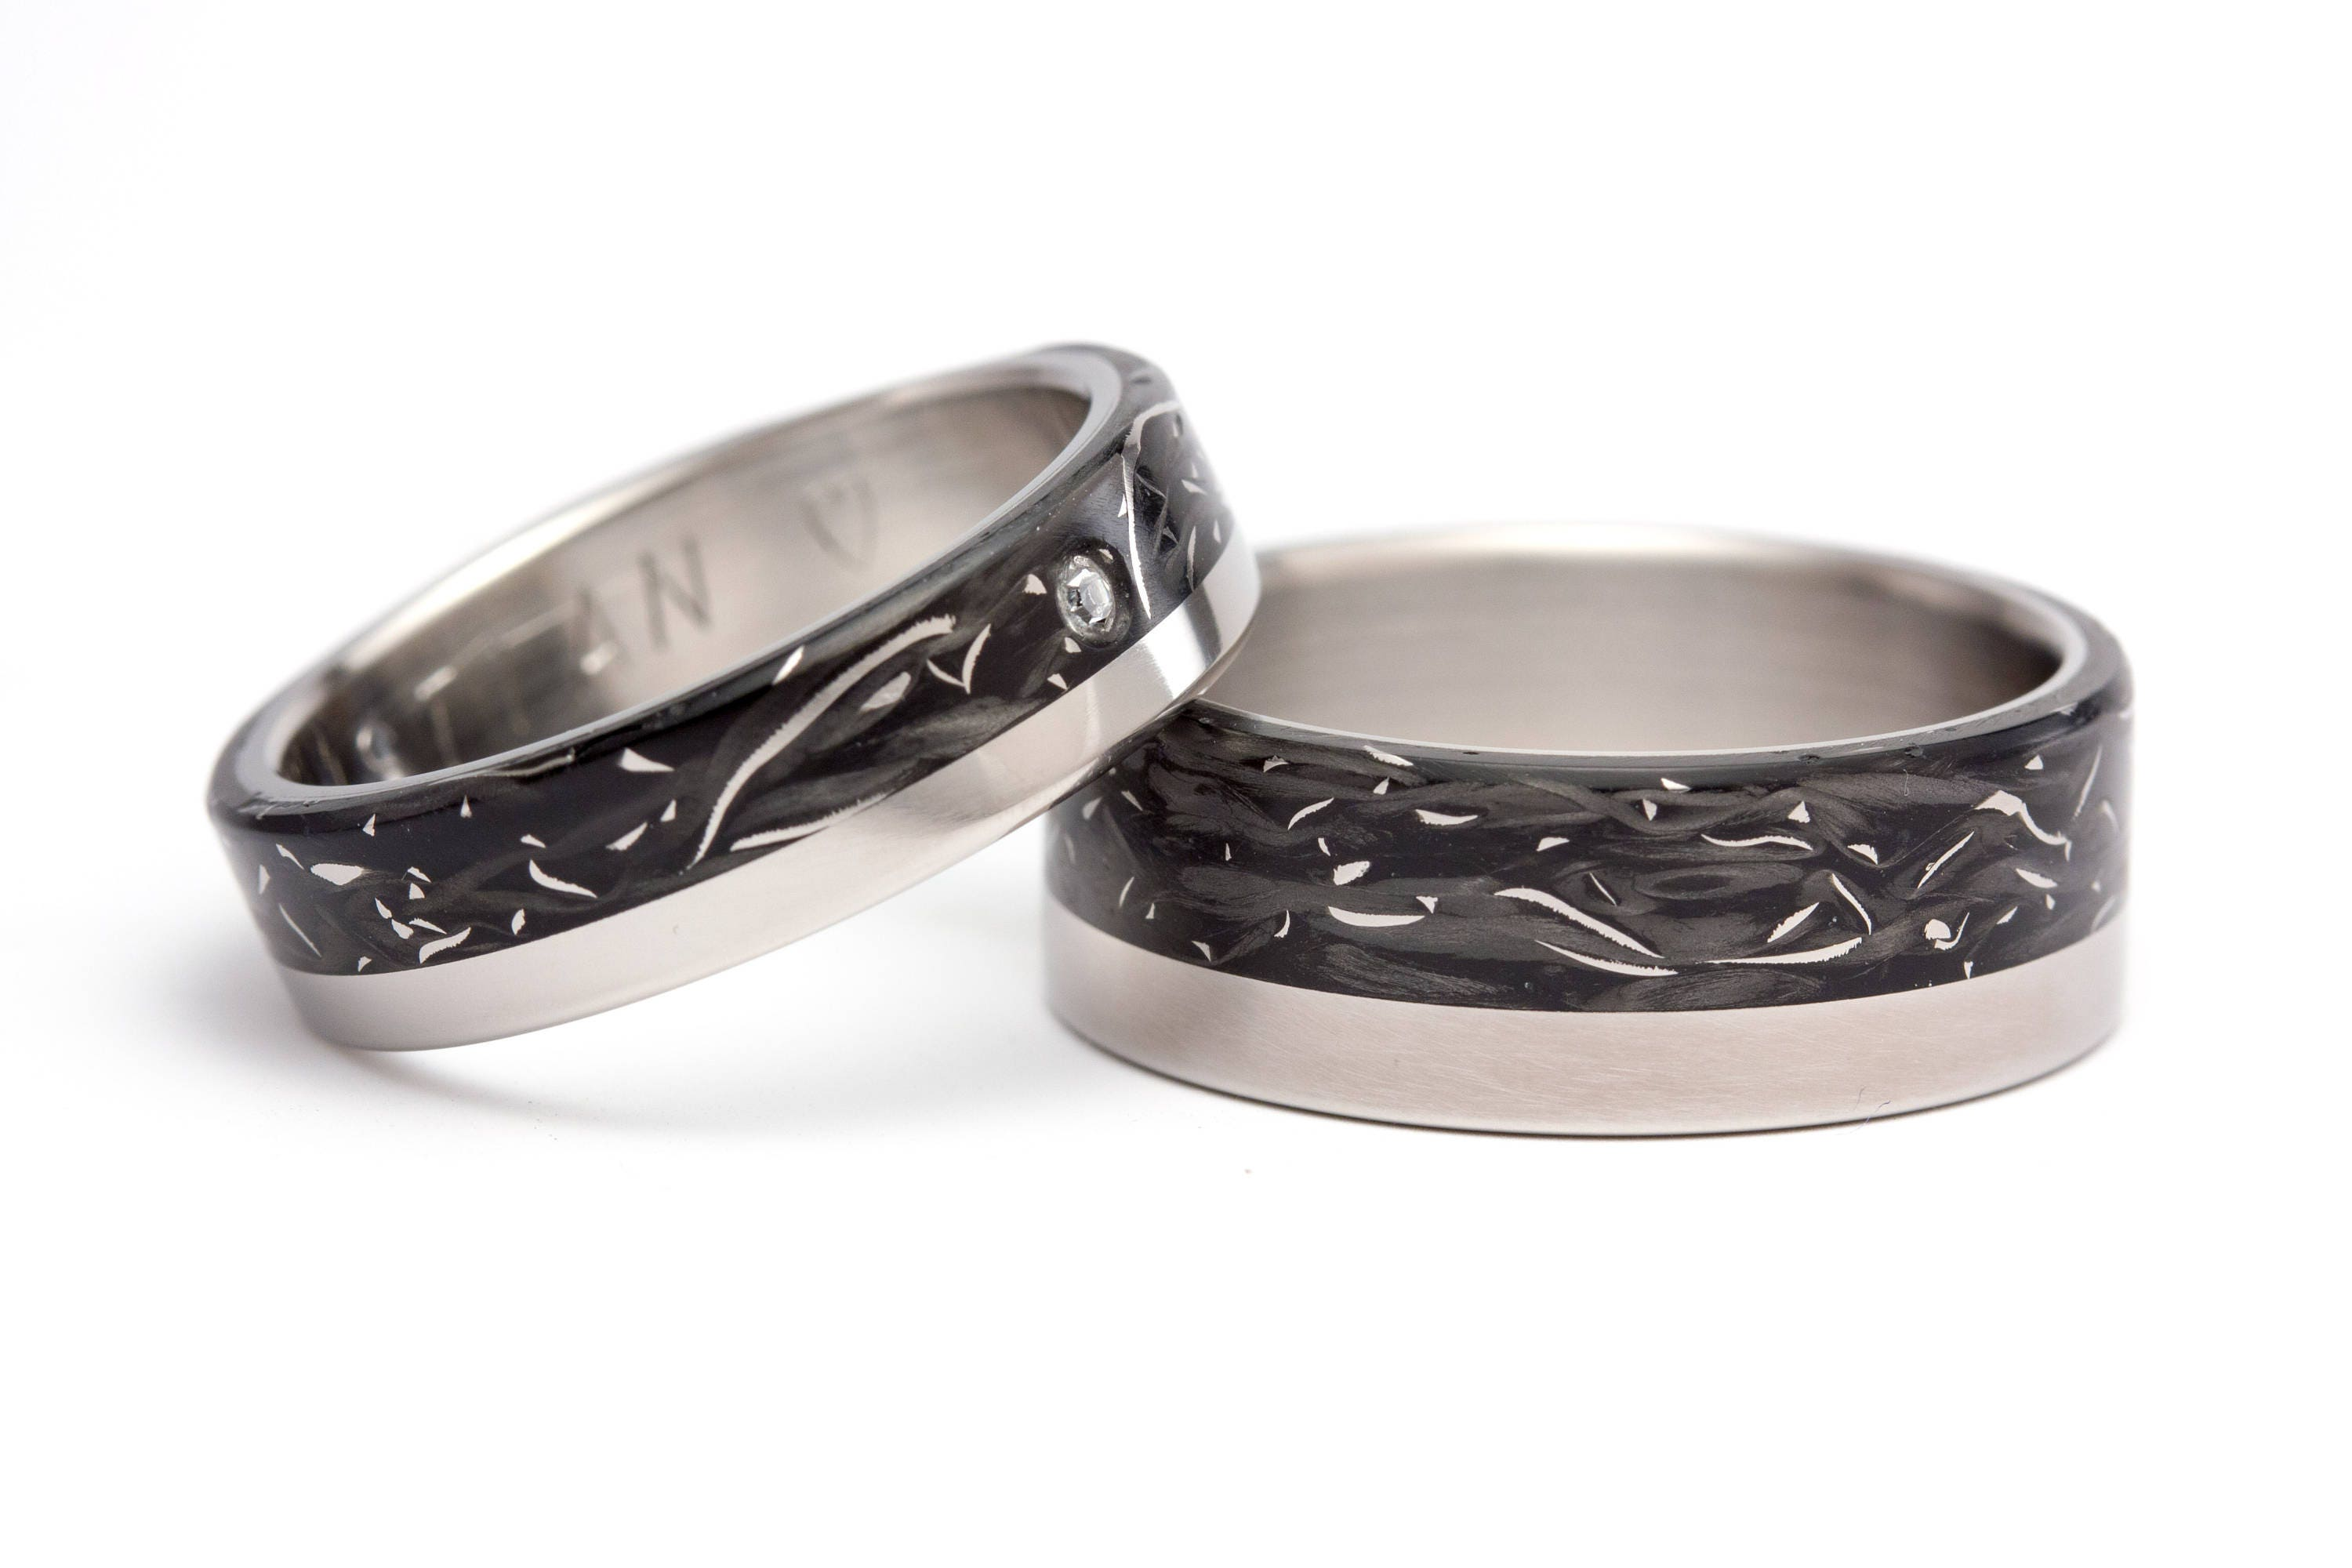 Polished Carbon Fiber And Titanium Threads Wedding Bands With Swarovski Crystal 00332 5S8N